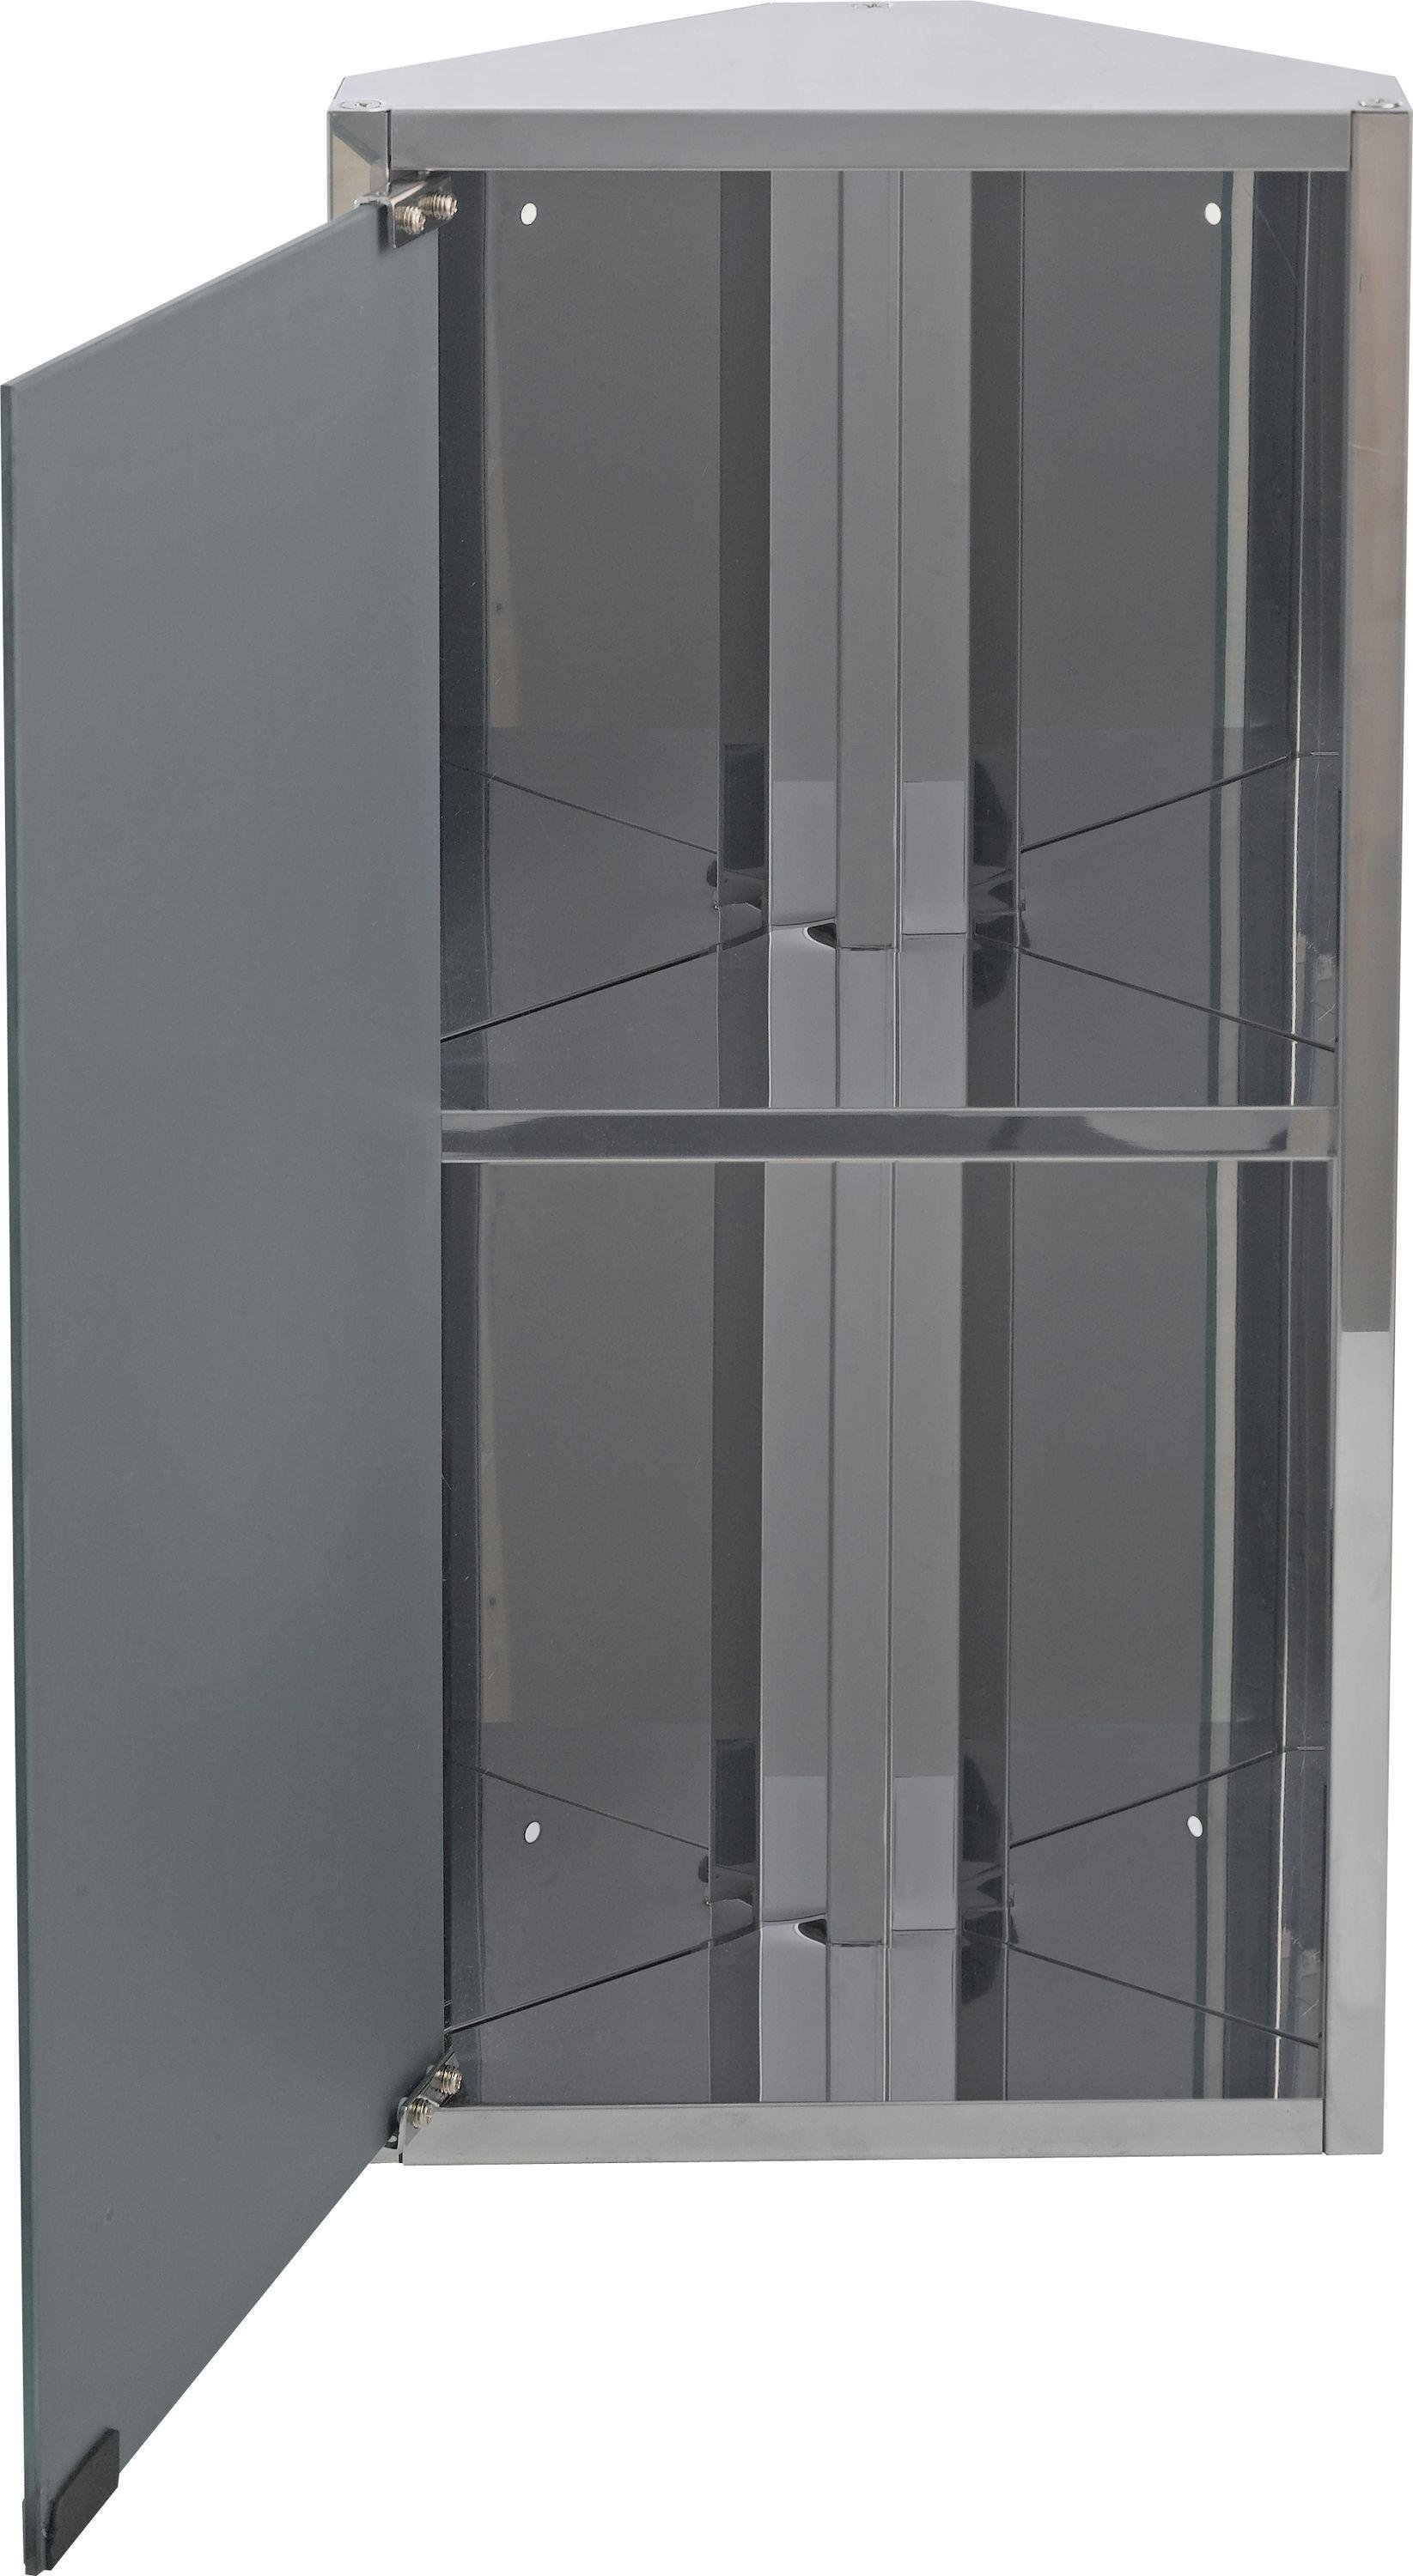 Stainless Steel Mirrored Bathroom Cabinets Home Mirrored Bathroom Corner Cabinet Stainless Steel